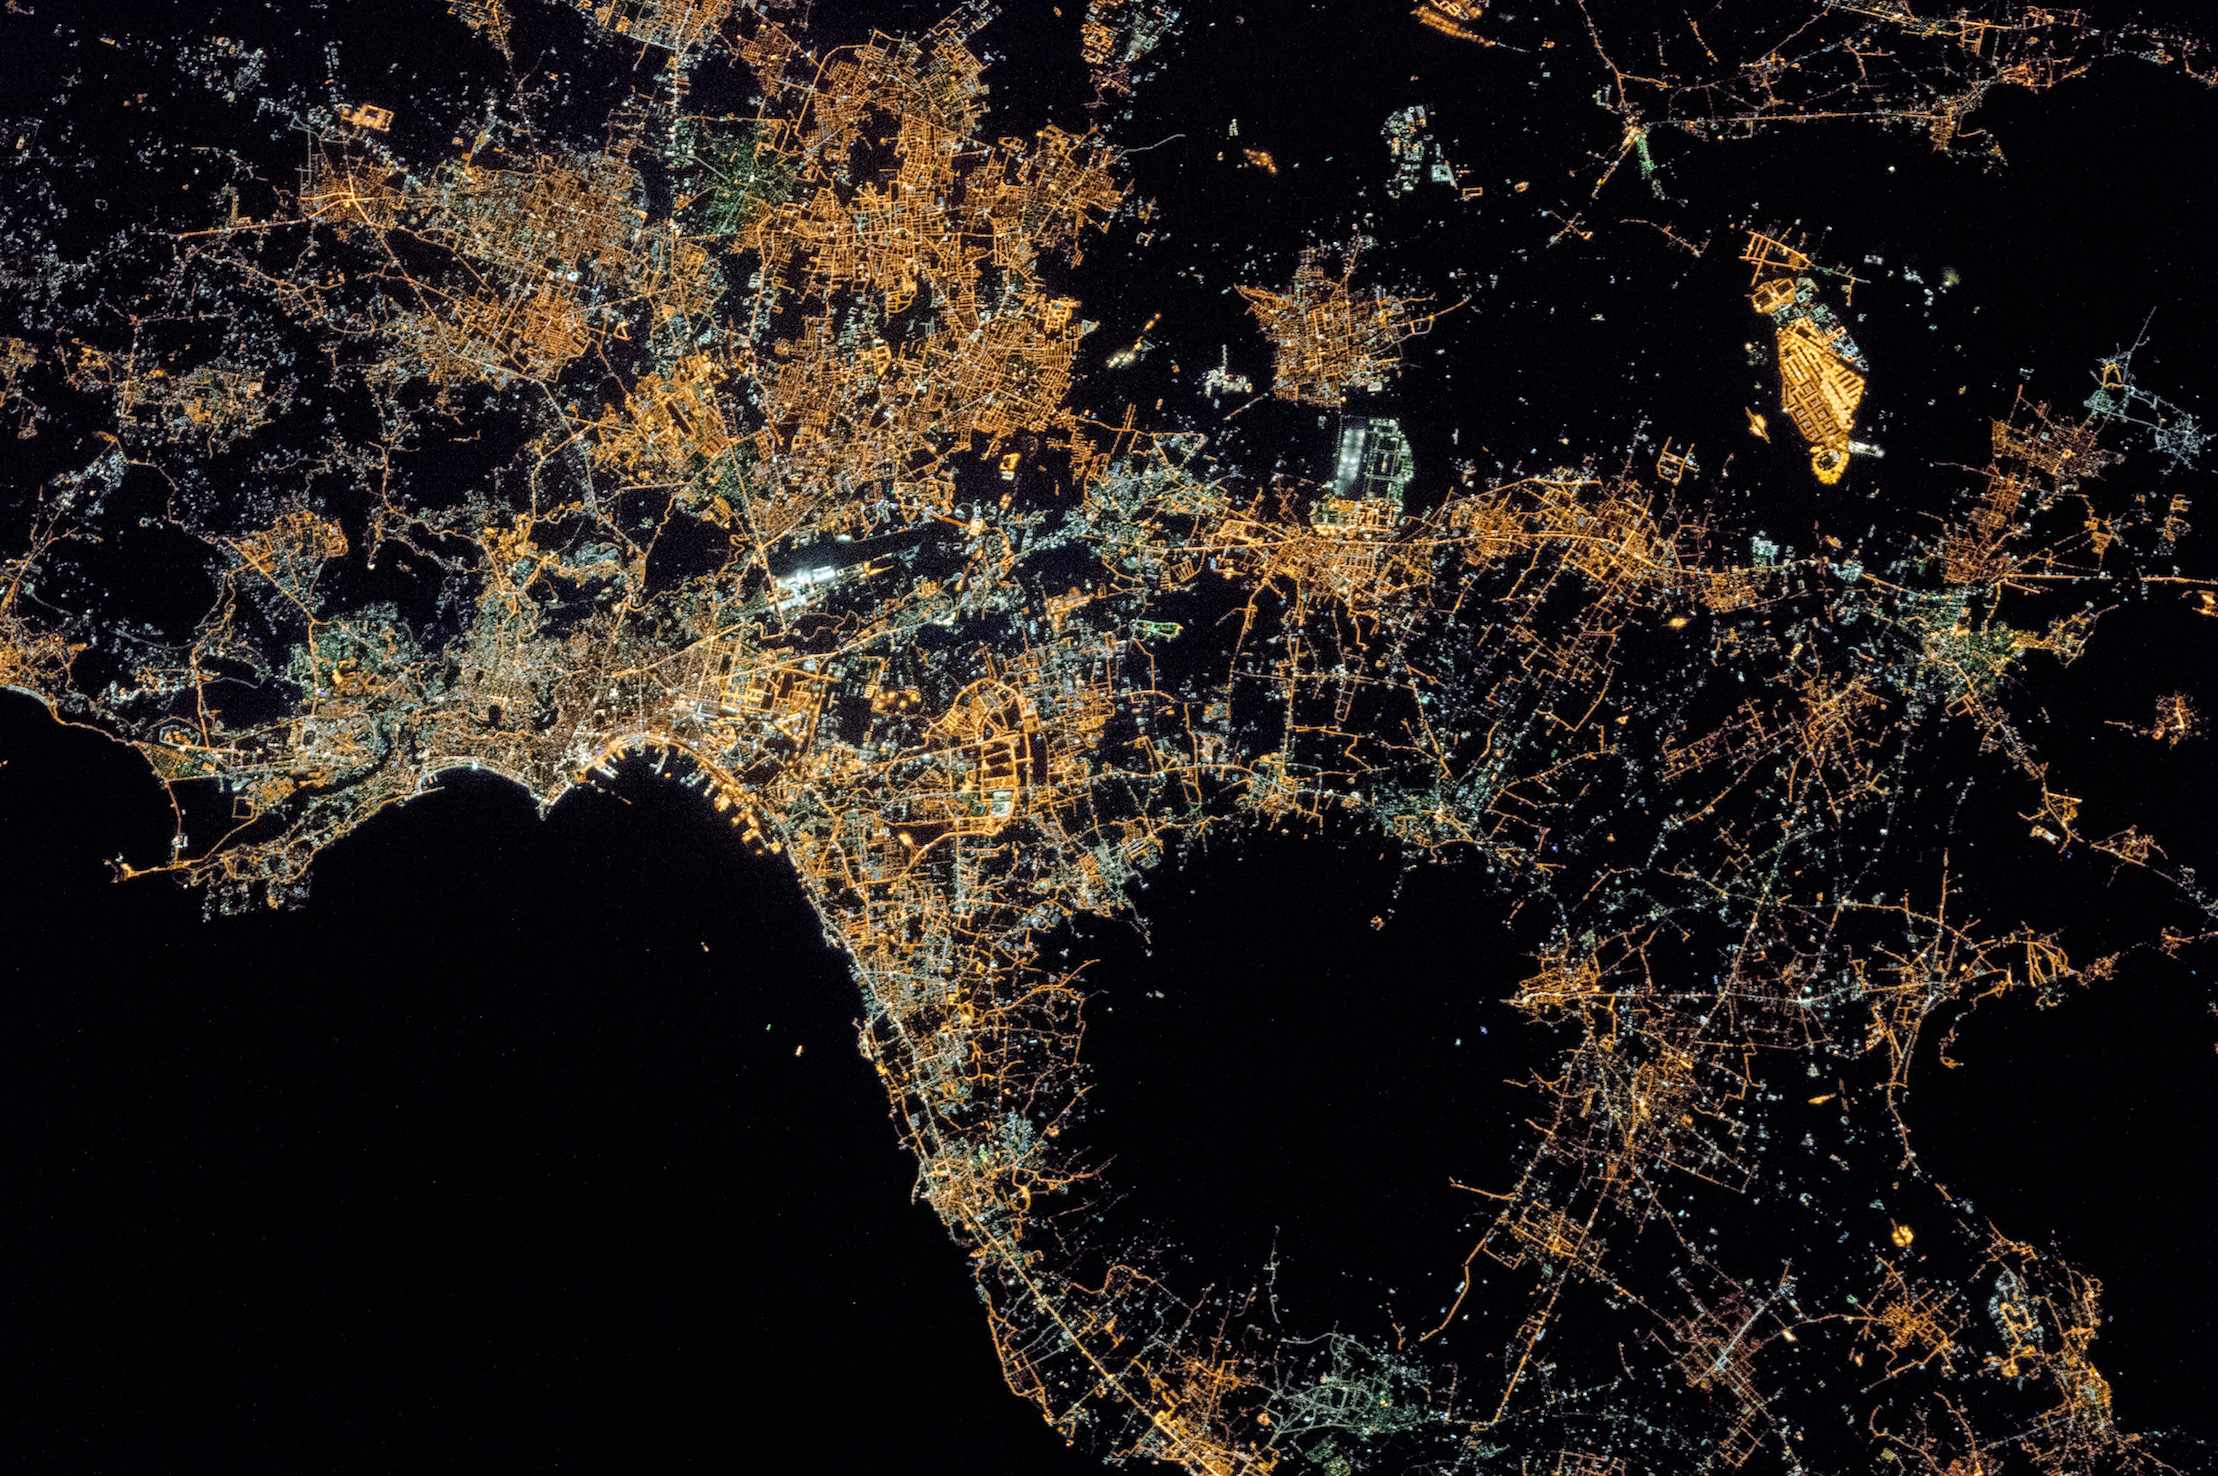 Today's Image of the Day comes courtesy of the NASA Earth Observatory and features a stunning overhead view of nighttime in Naples, Italy.